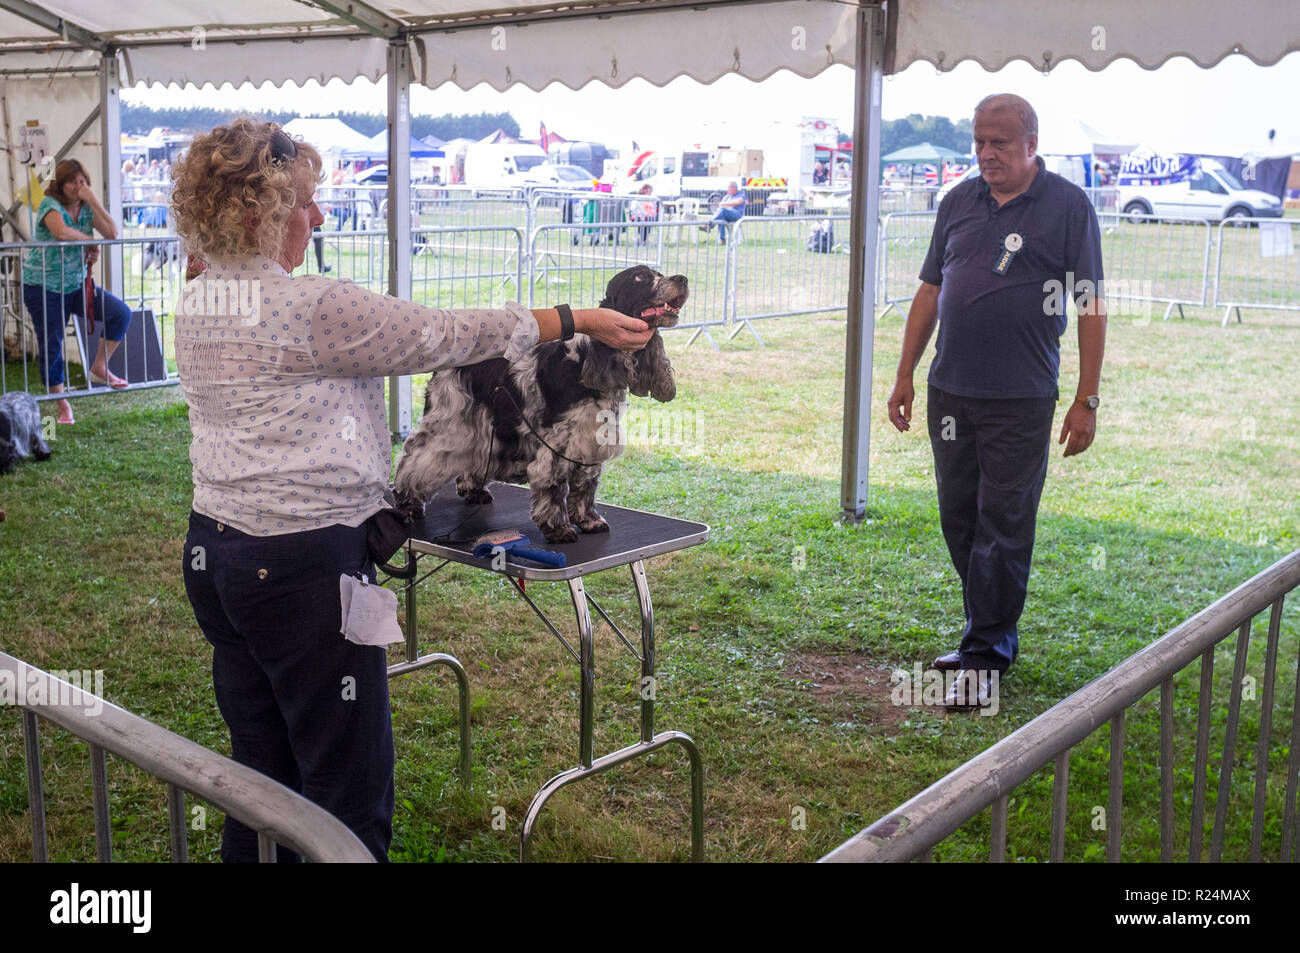 Judging a Springer Spaniel at Thame horse and Dog Show, Oxfordshire - Stock Image